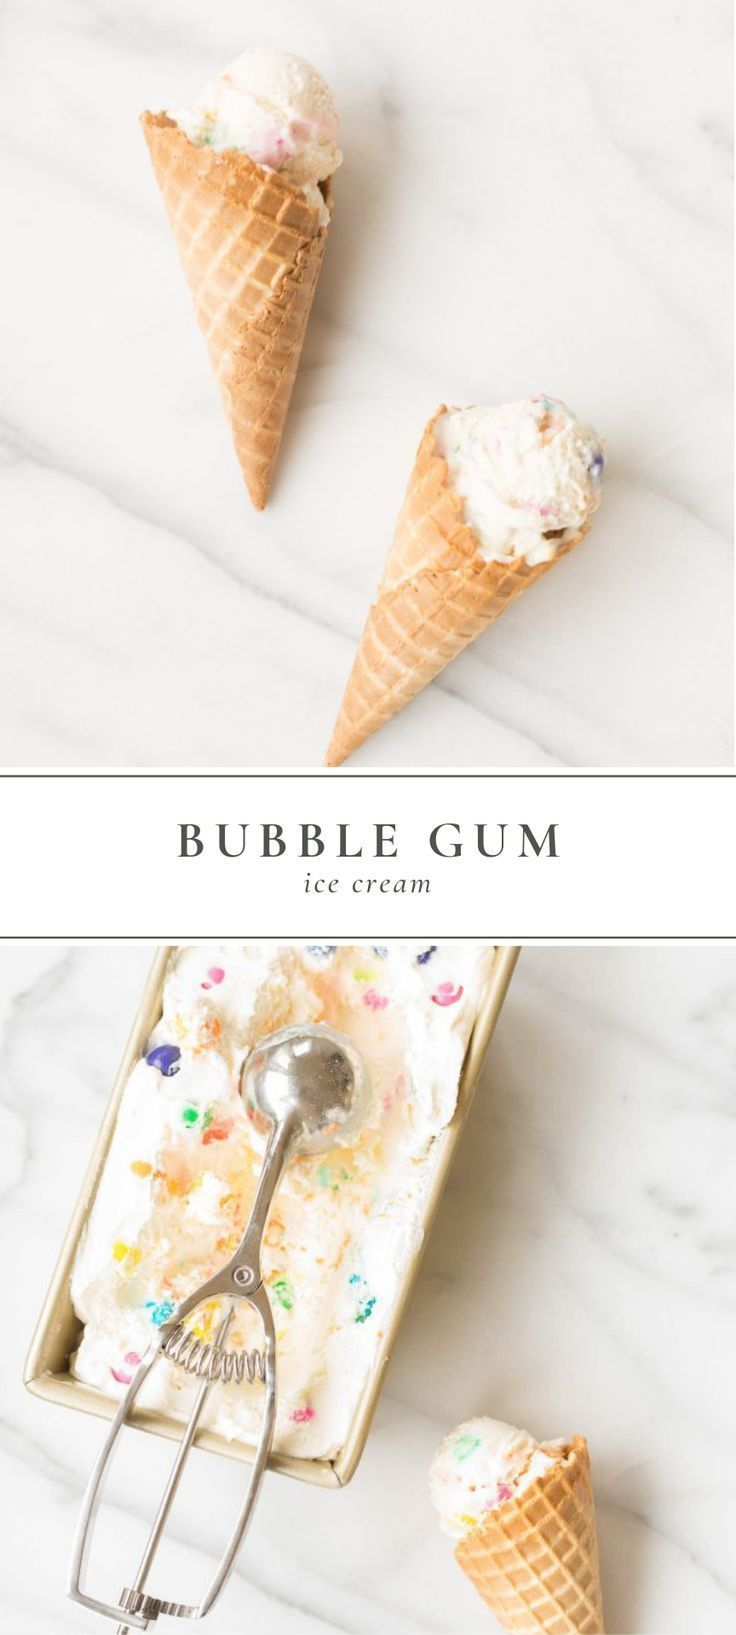 """A quick Bubble Gum Ice Cream recipe with just 4 ingredients and 5 minutes of hands-on time. This no-churn ice cream requires no special """"tools"""" and is the perfect ice cream to make with your child. It is the stuff childhood dreams are made of! quick Bubble Gum Ice Cream recipe with just 4 ingredients and 5 minutes of hands-on time. This no-churn ice cream requires no special """"tools"""" and is the perfect ice cream to make with your child. It is the stuff childhood dreams are made of!"""